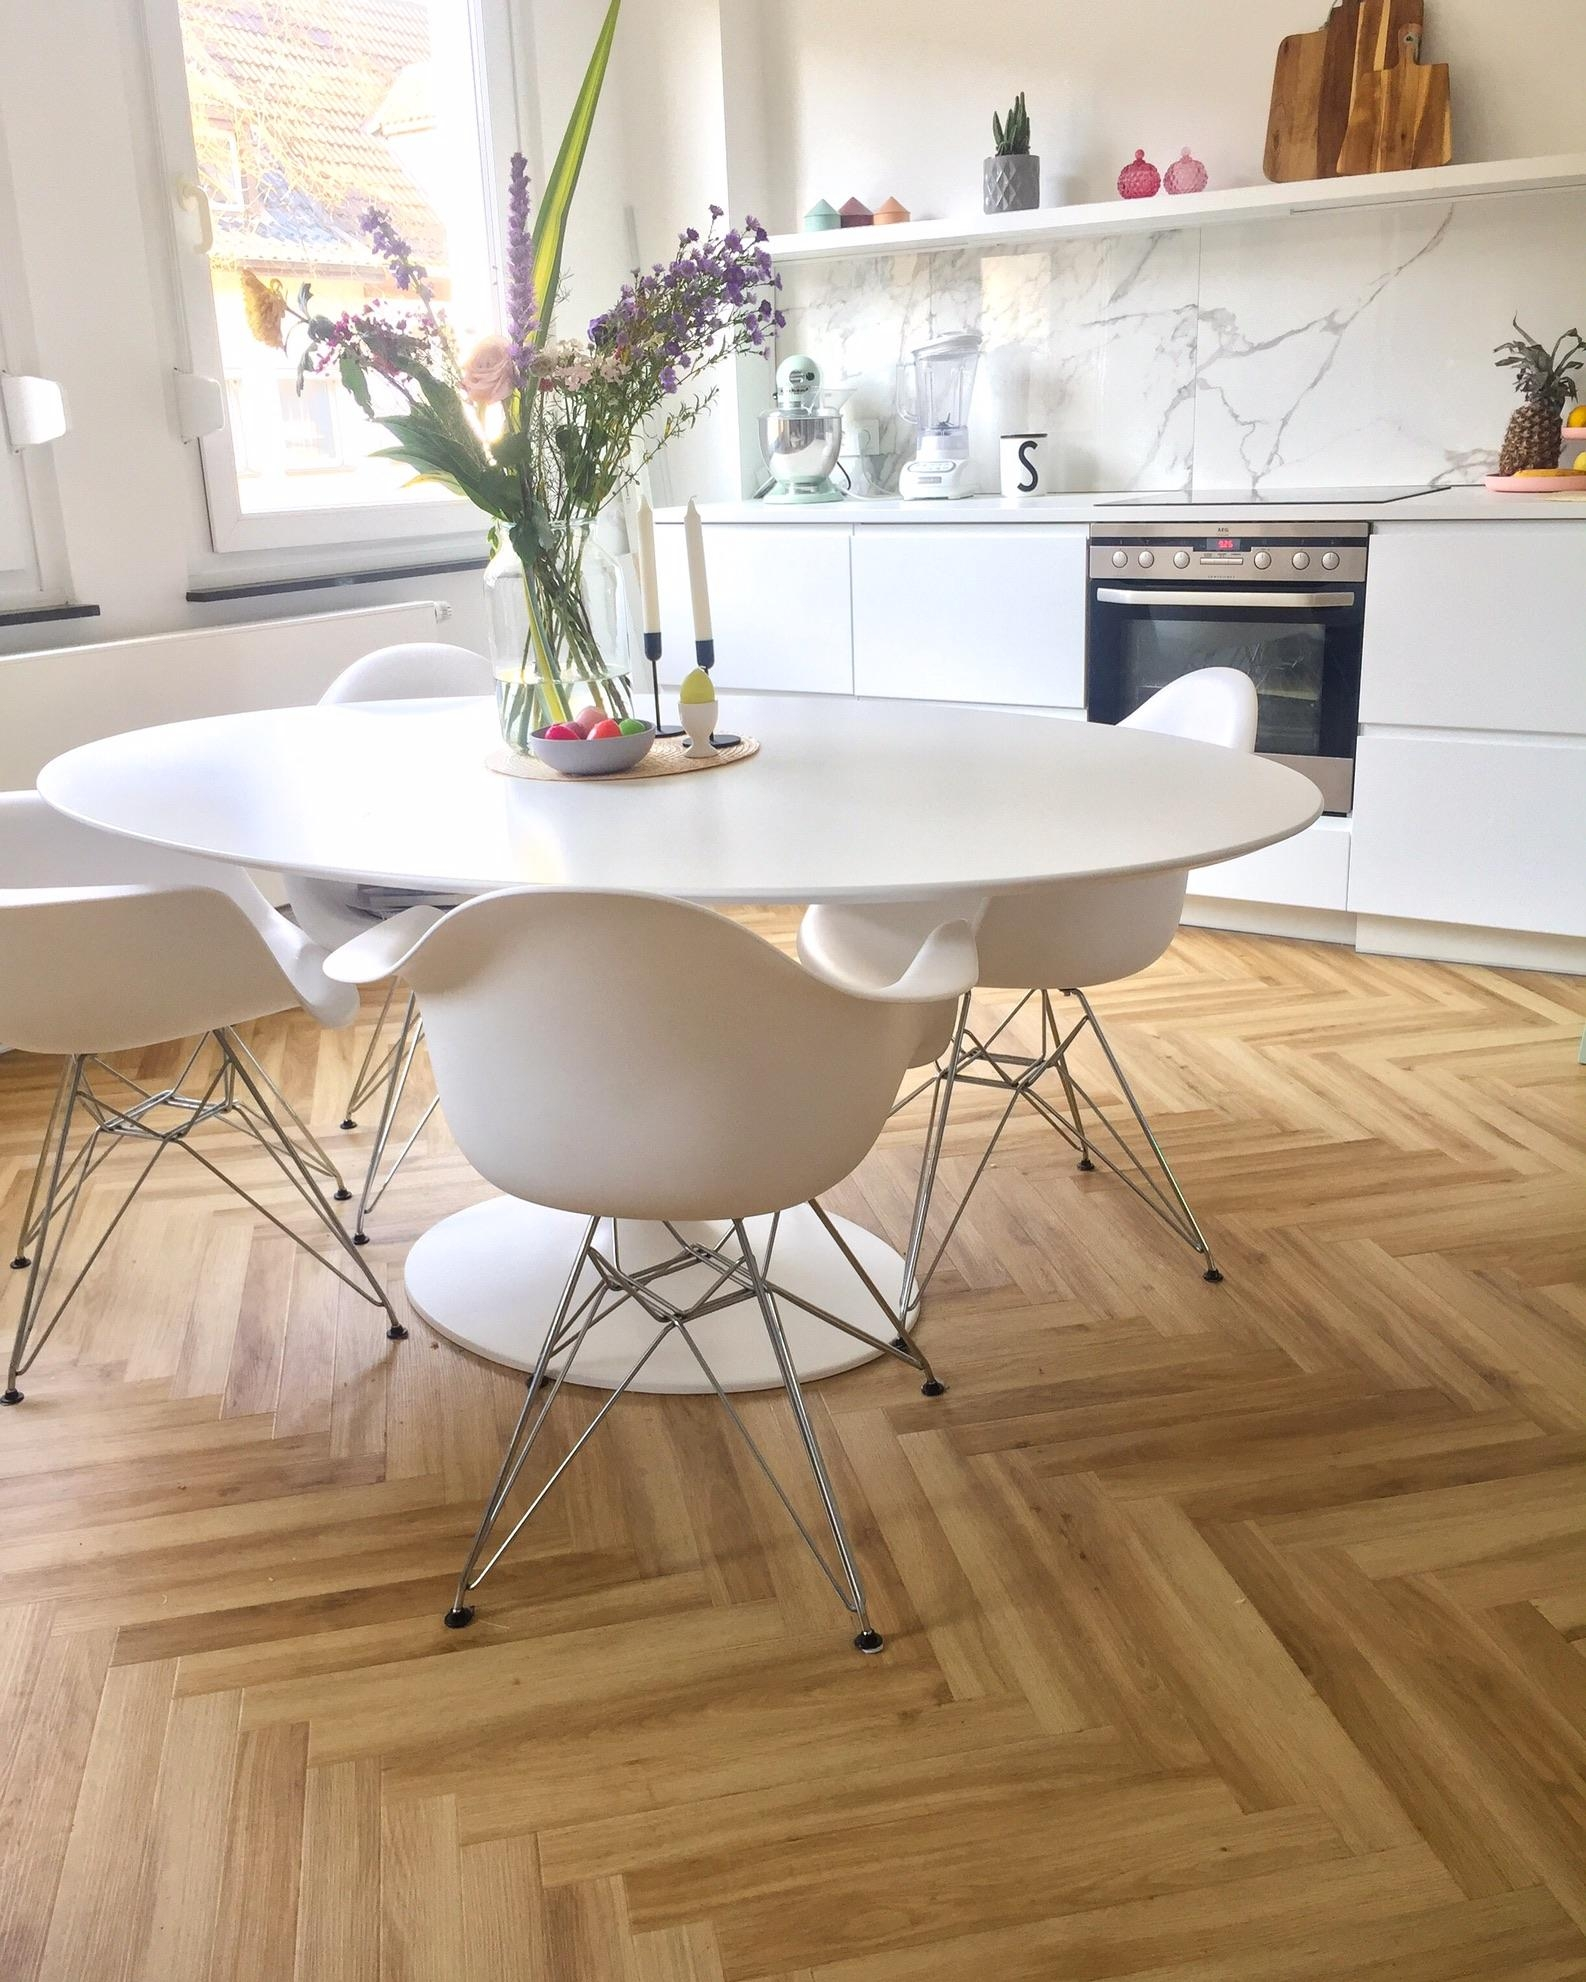 #freshflower #kitchen #küche #saarinen #table #tisch #knoll #vitra #eames #eamesarmchair #marble #marmor #blackandwhite